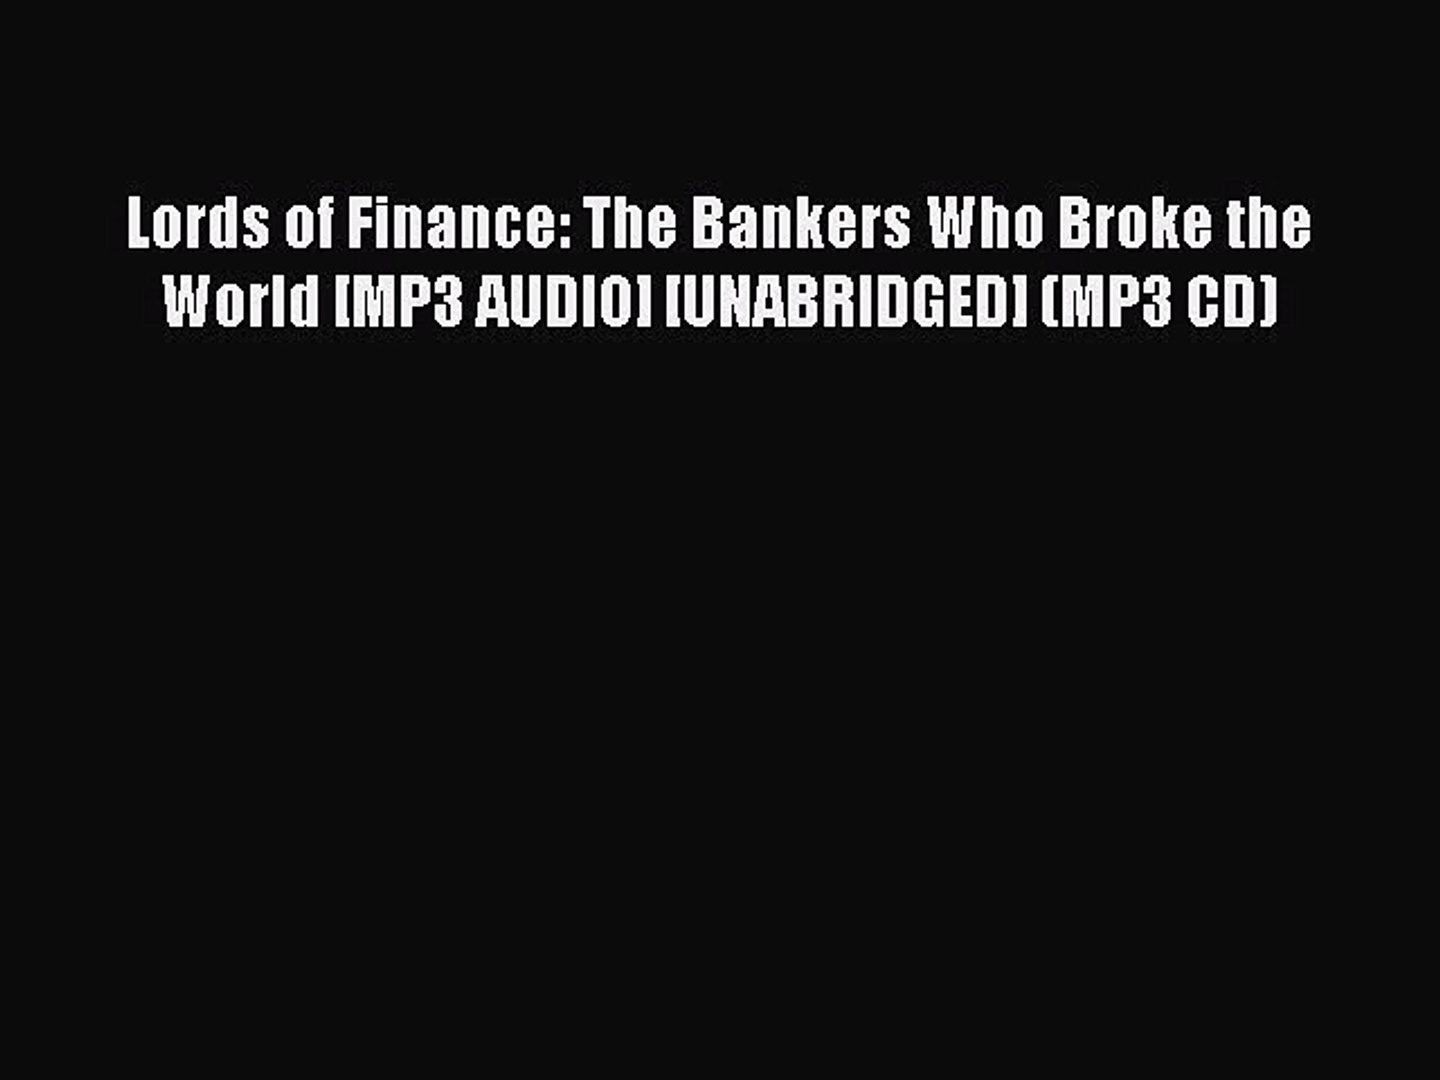 Read Lords of Finance: The Bankers Who Broke the World [MP3 AUDIO] [UNABRIDGED] (MP3 CD) Ebook